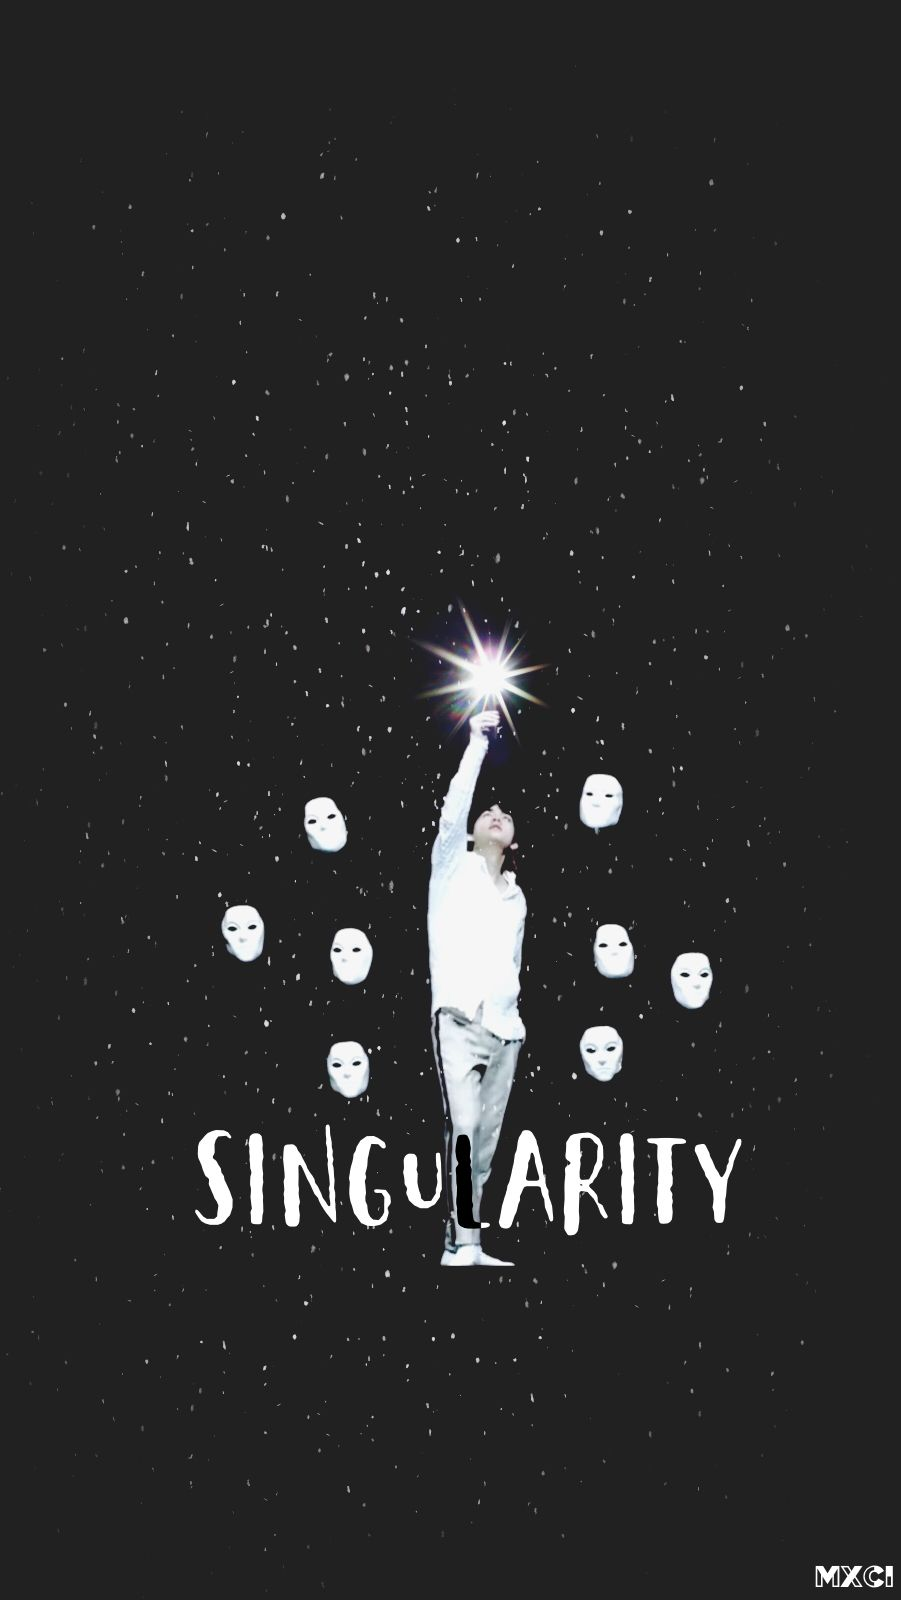 901x1600 - Singularity HD Wallpapers 17